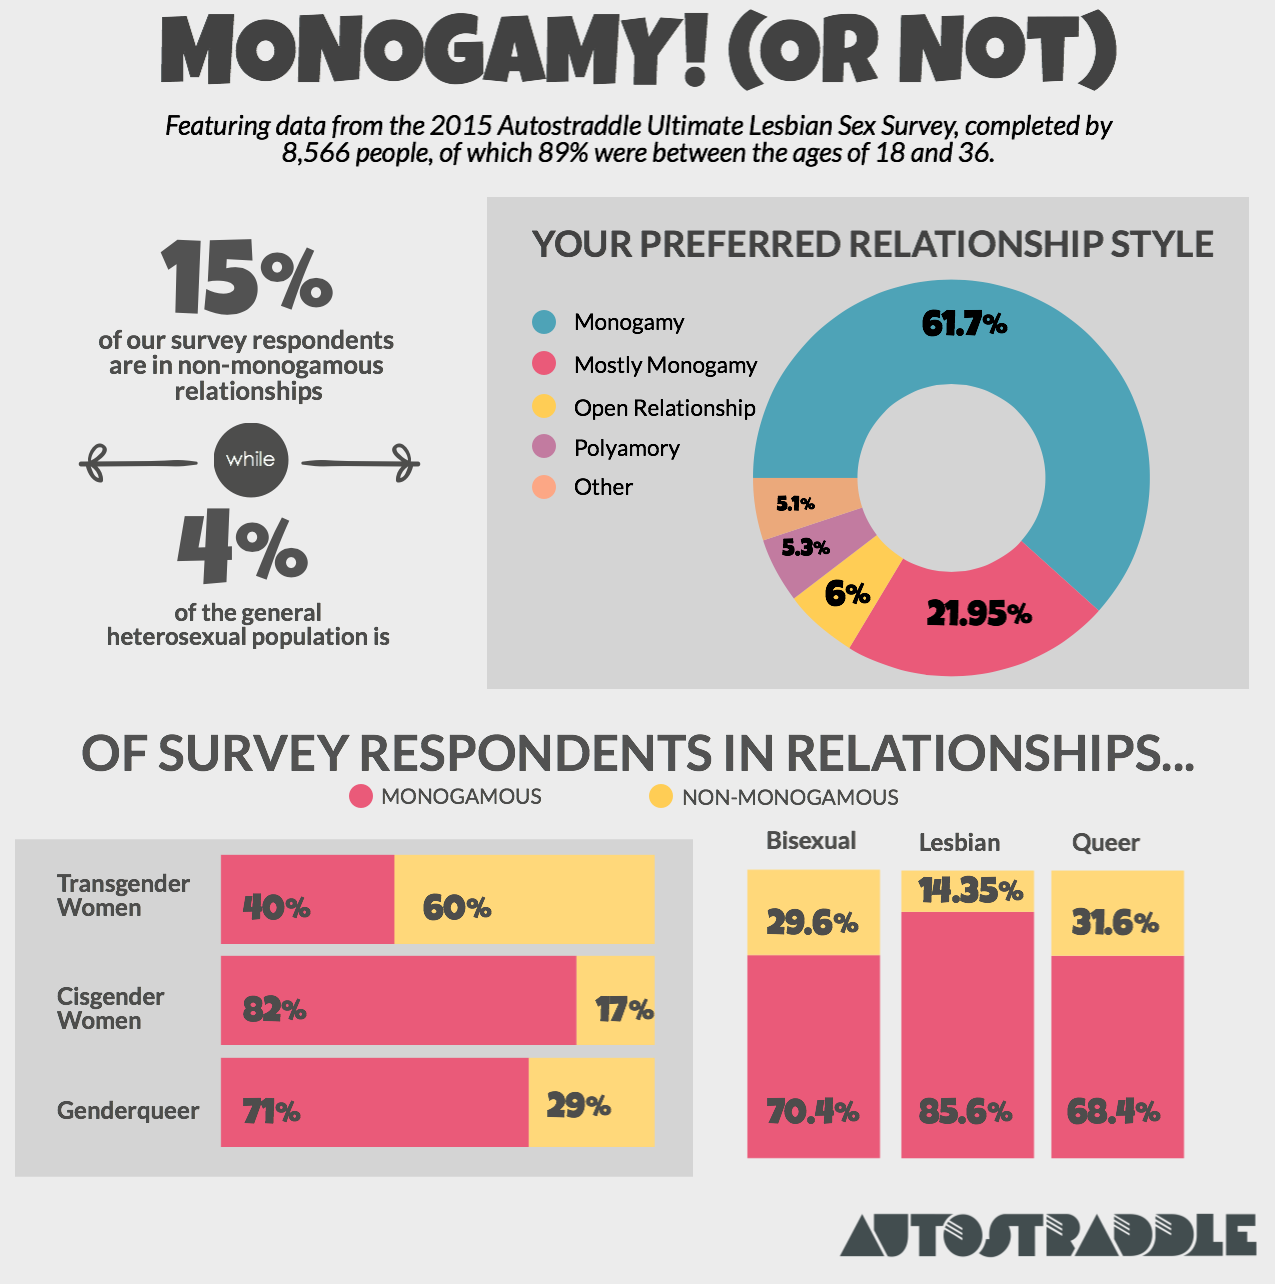 my quick takeaway the survey seems to confirm the conventional assumption that queer women are much more monogamous than gay men in both orientation and